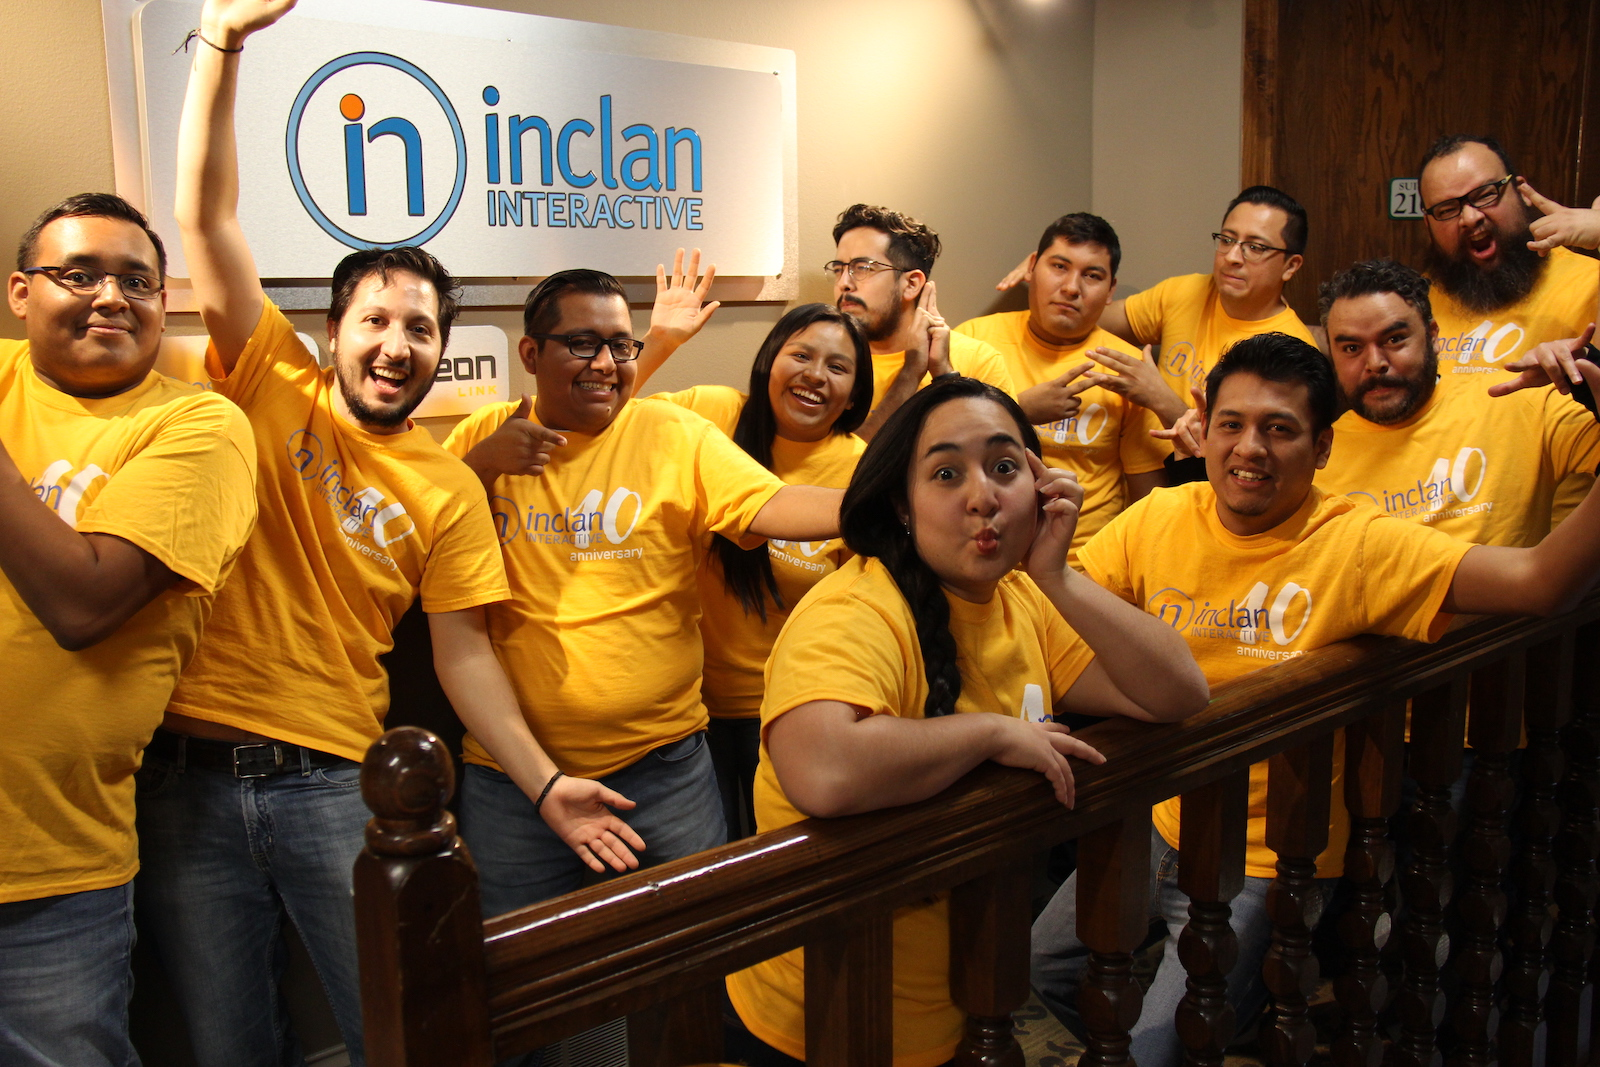 Inclan Interactive office